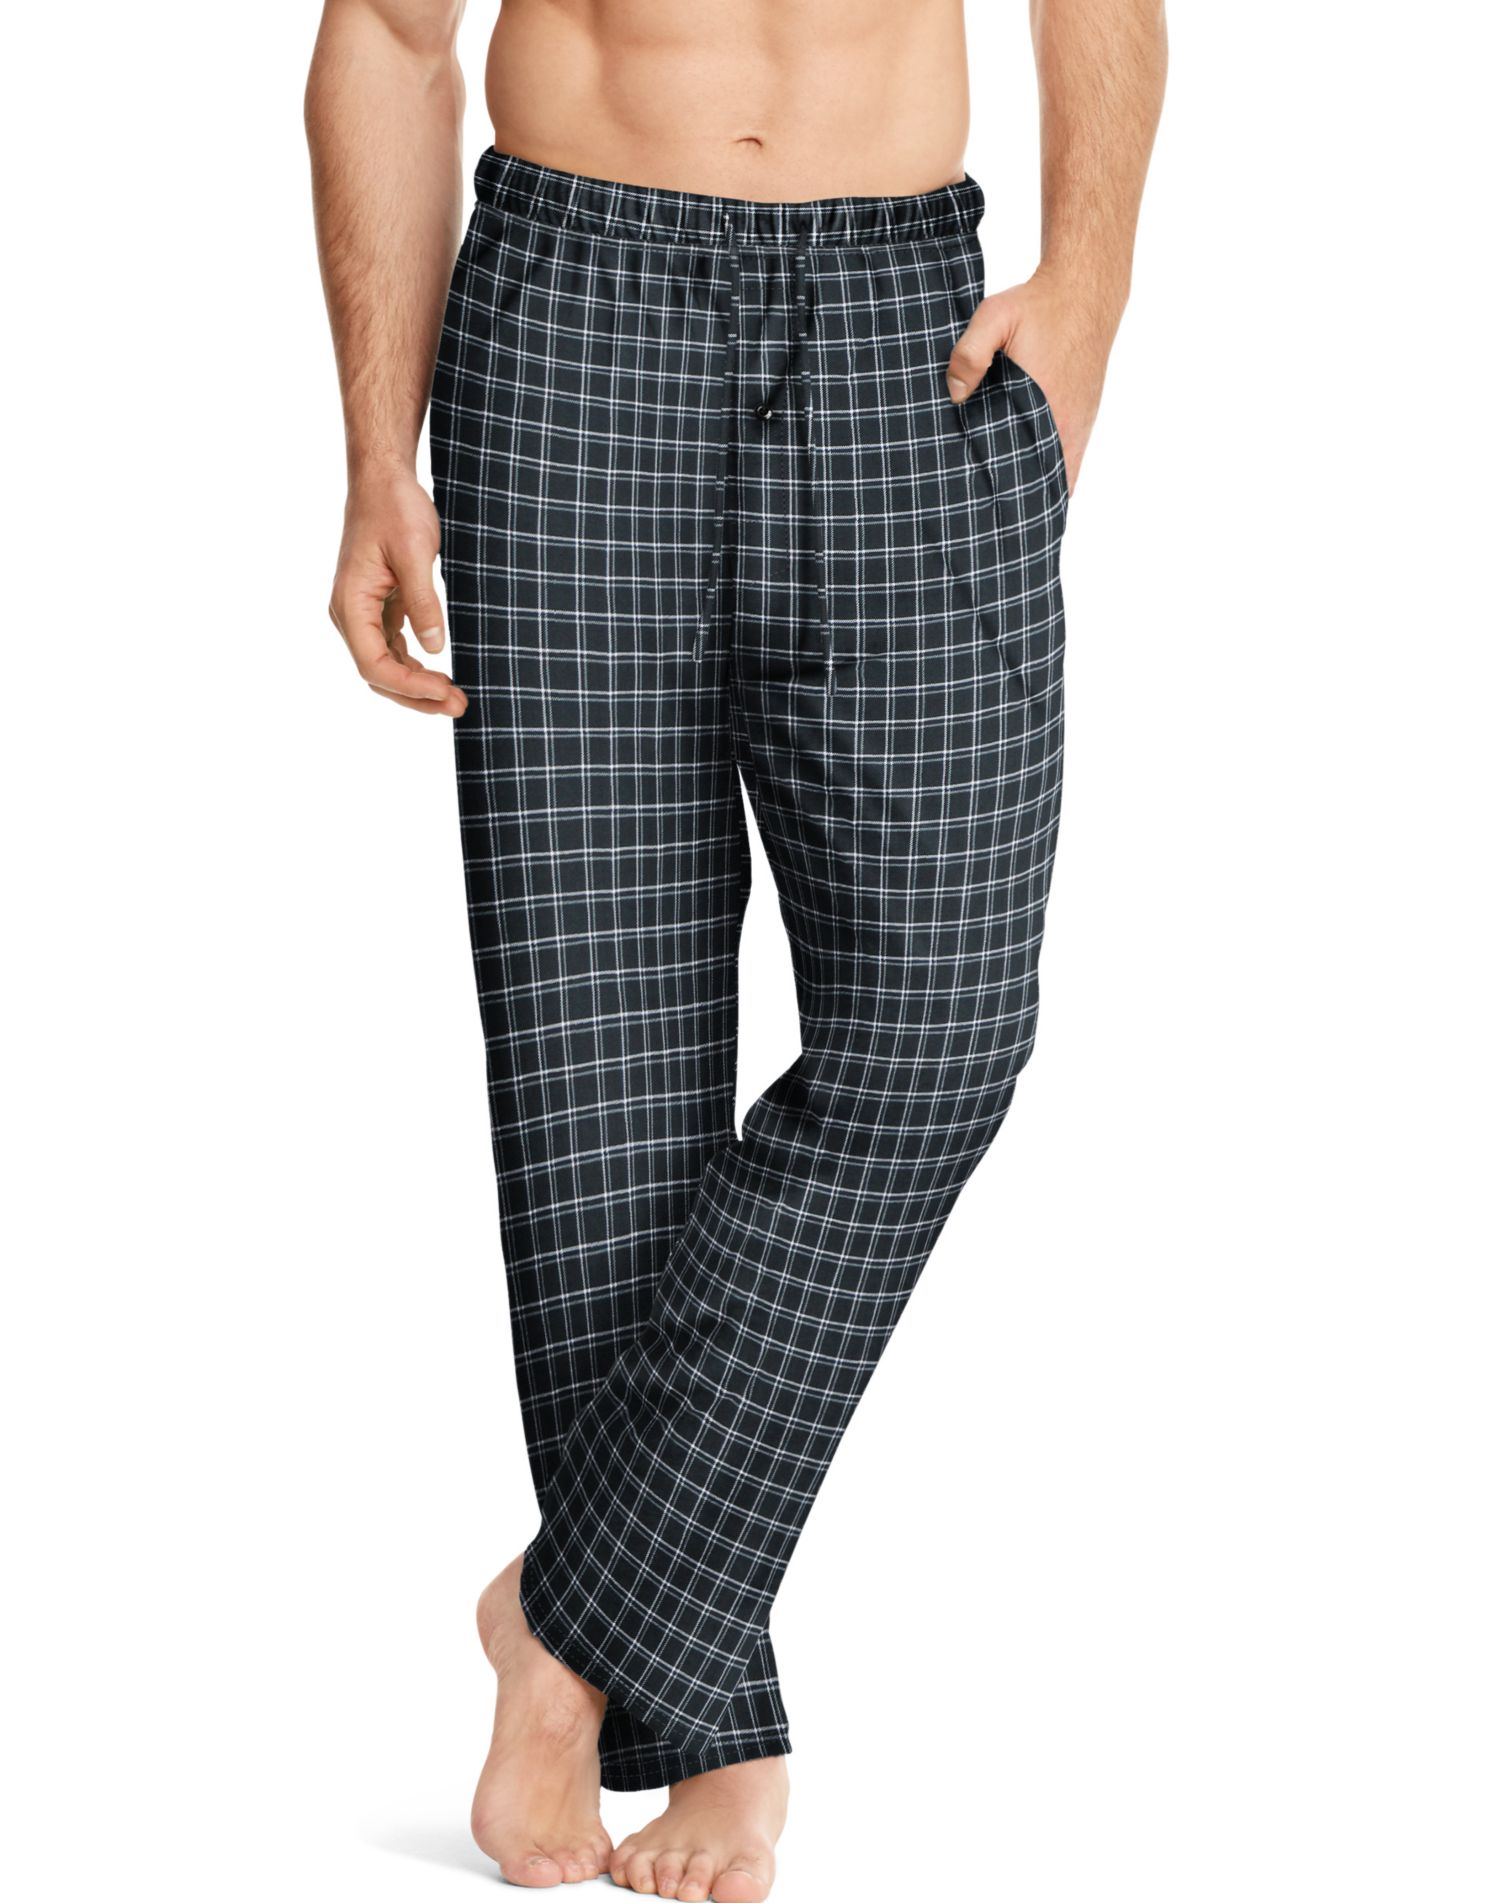 Hanes ComfortSoft Men`s Cotton Printed Lounge Pants - Best-Seller, 5XL, Black